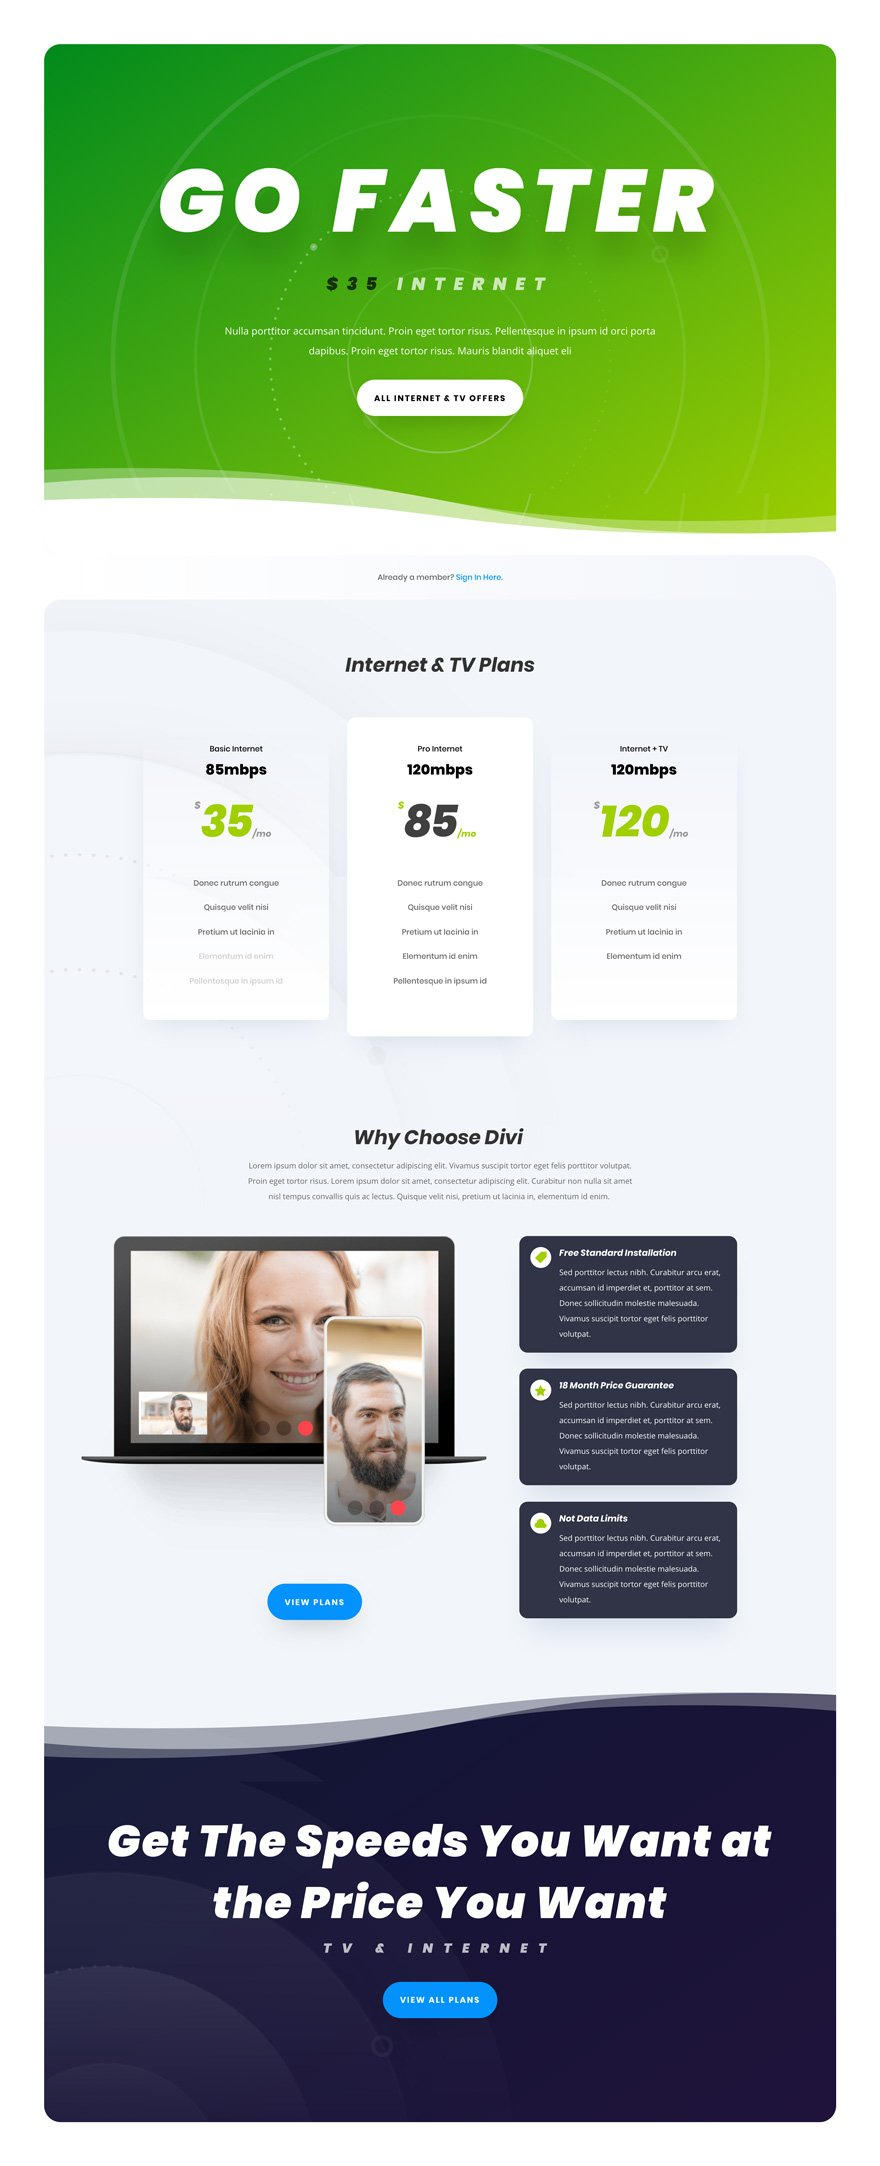 Get a FREE Internet Service Provider Layout Pack for Divi | Elegant